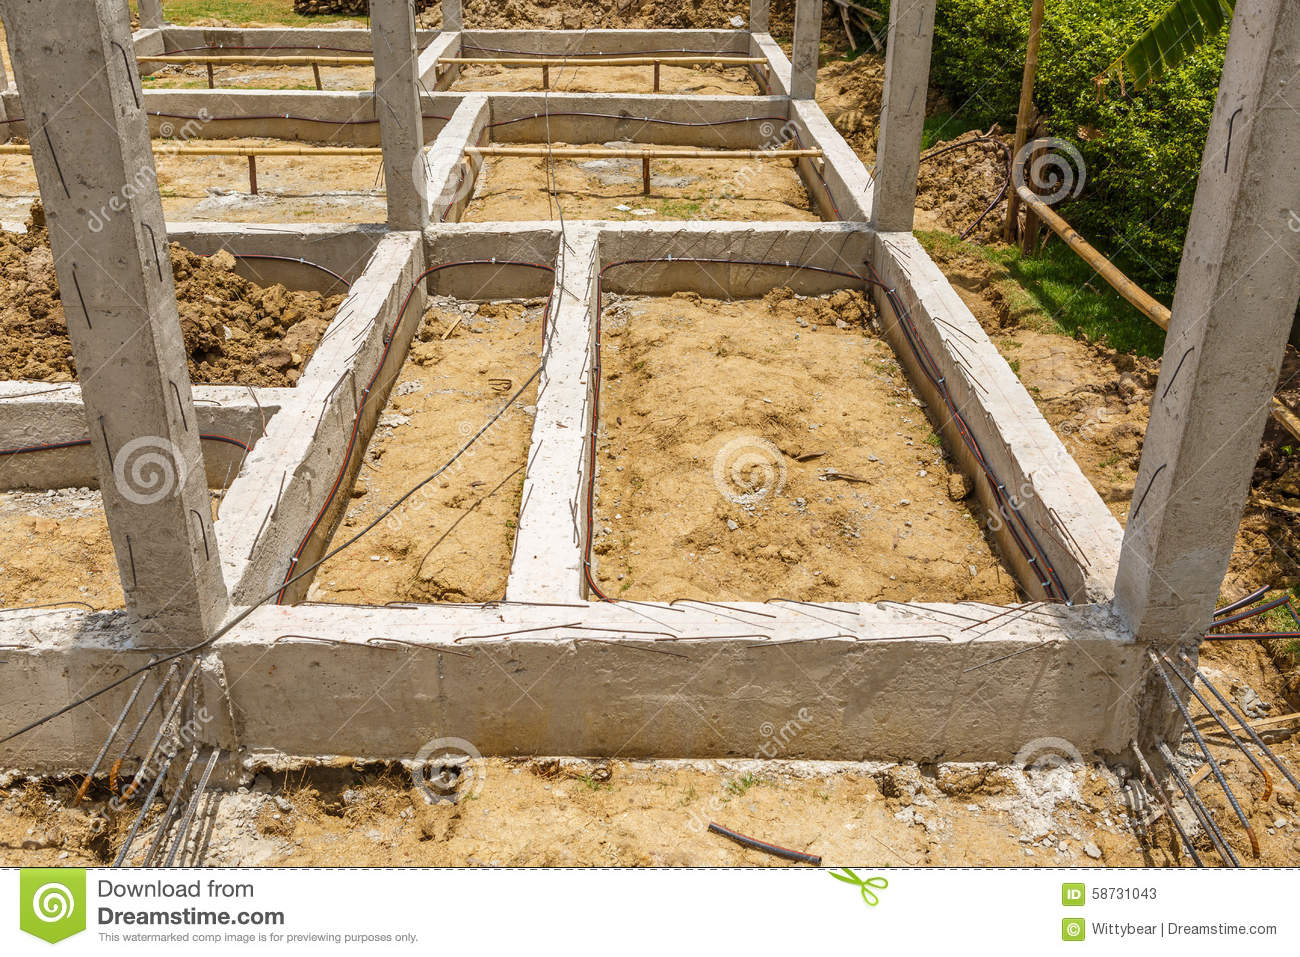 Termite Protection System On Home Foundation Stock Image Image Of Board Holding 58731043